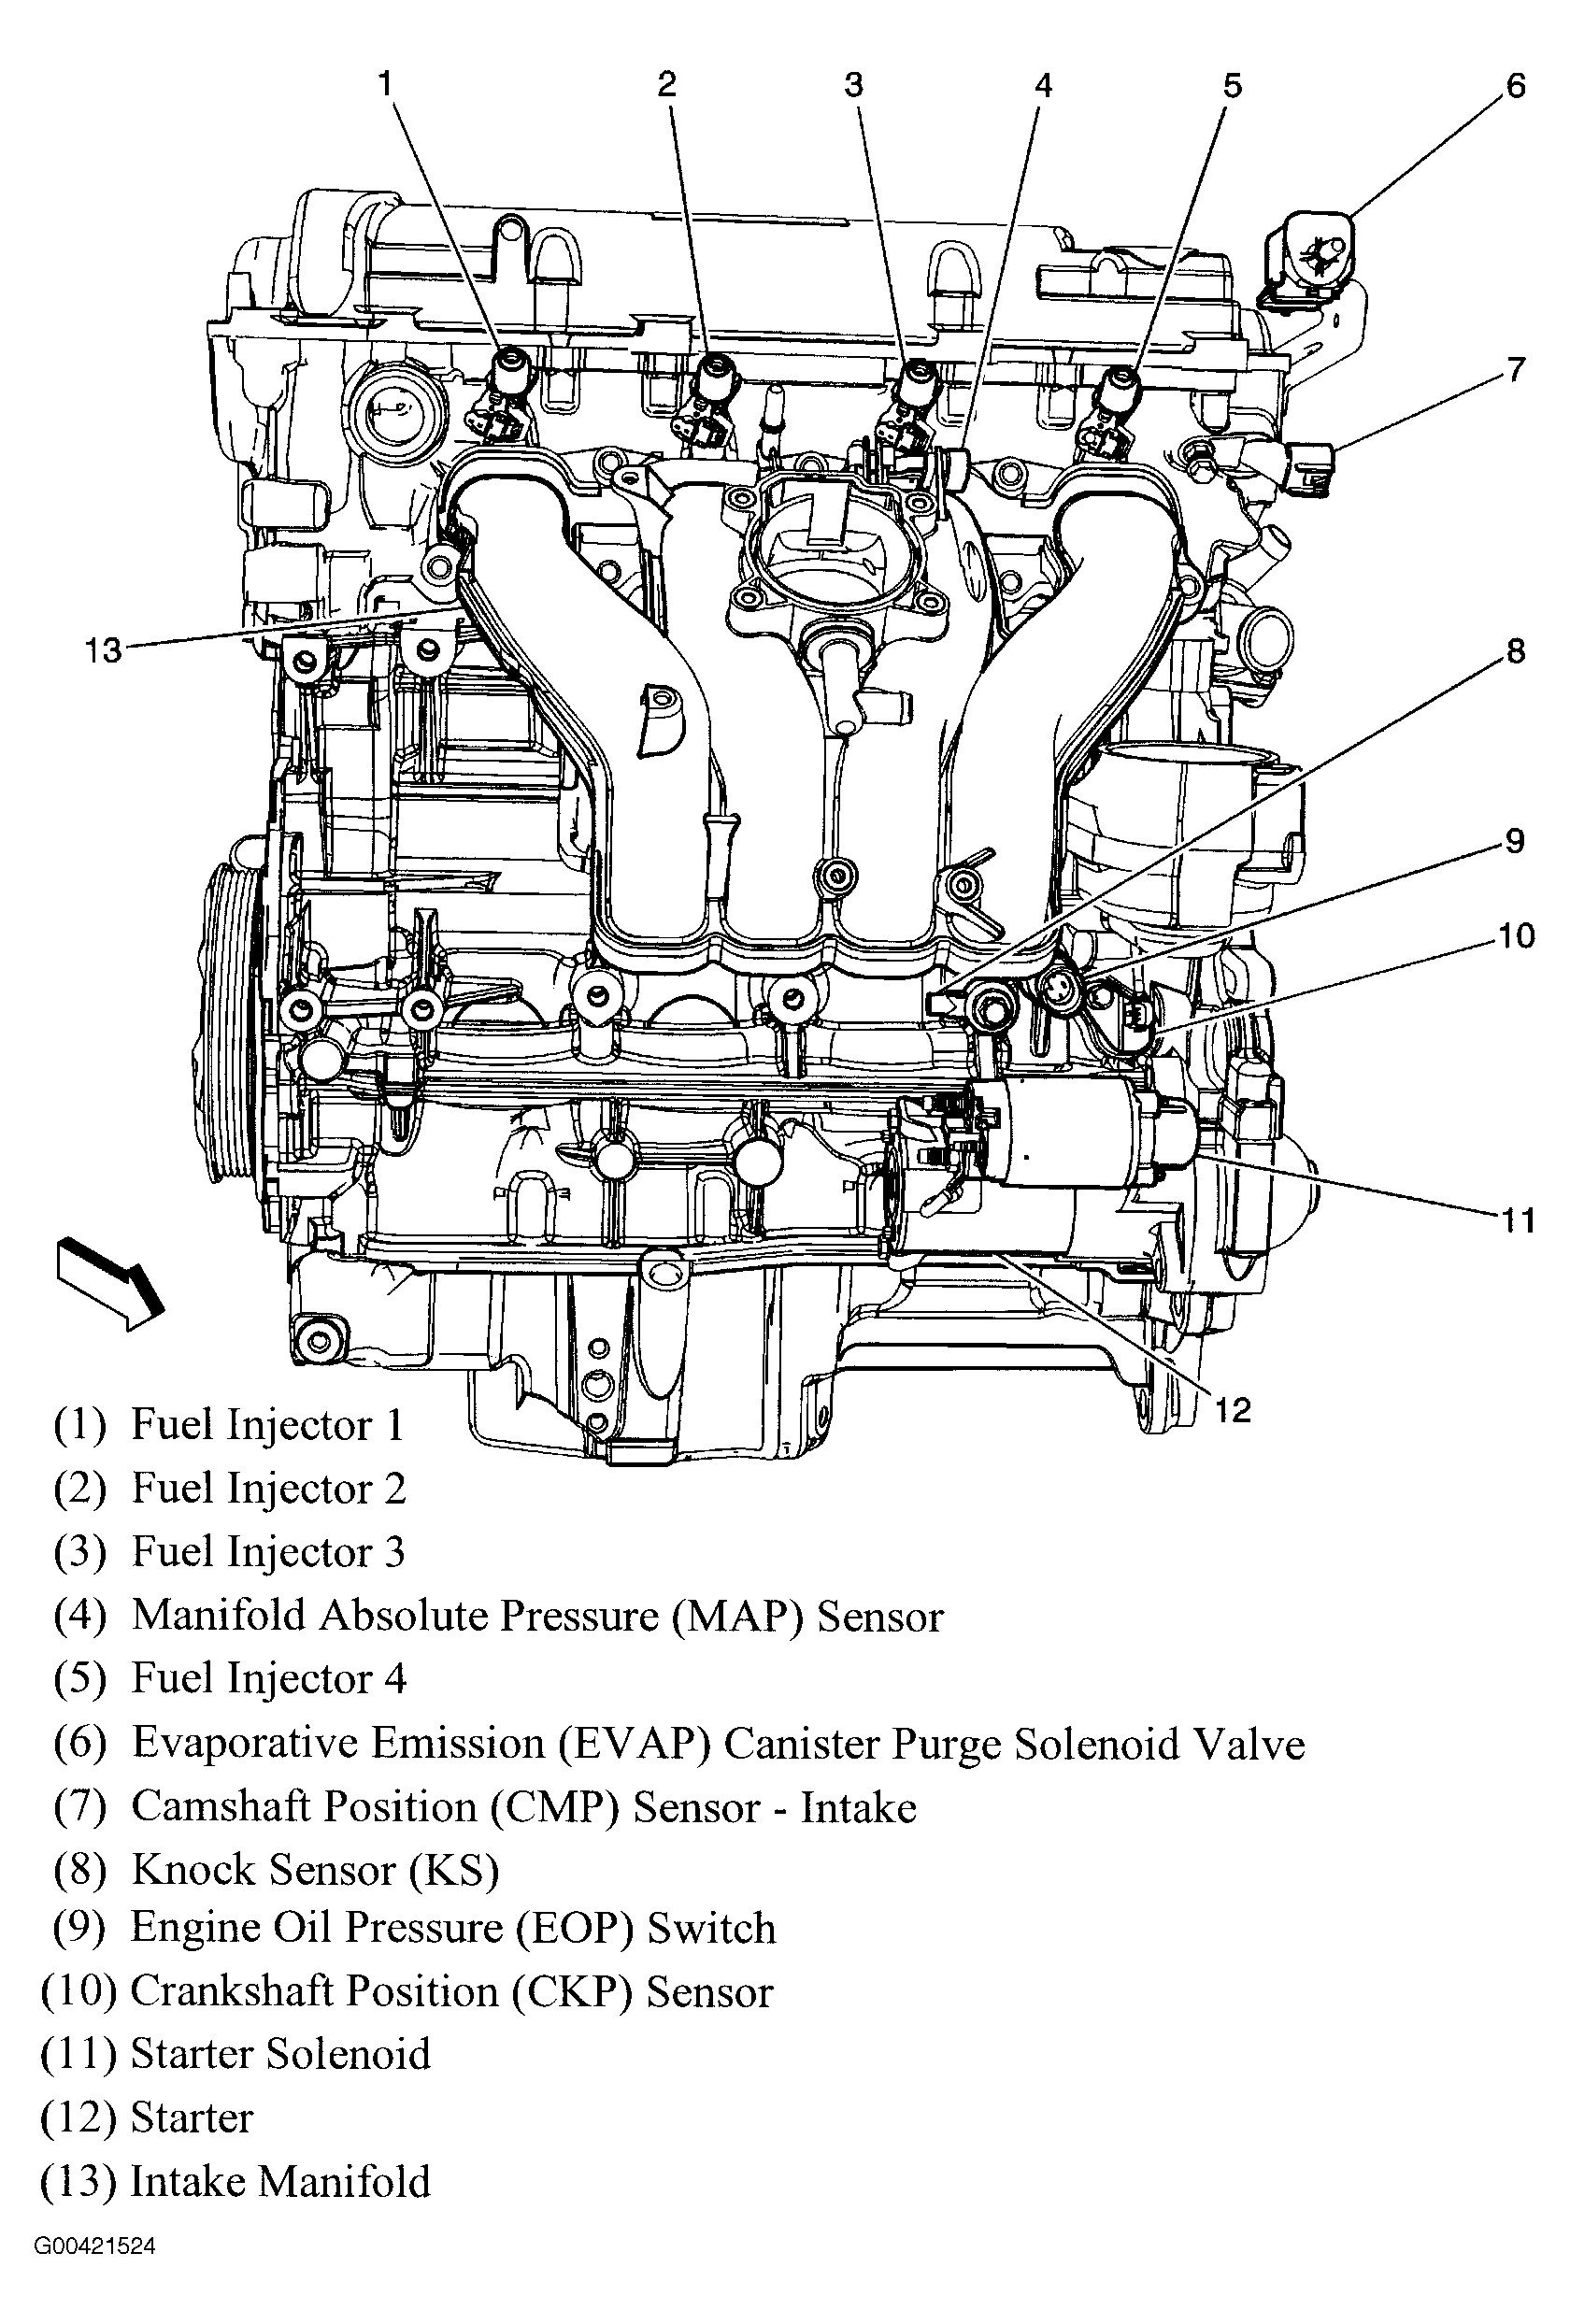 aveo engine diagram circuits symbols diagrams u2022 rh amdrums co uk 2010 chevy aveo engine diagram 2006 chevy aveo engine diagram